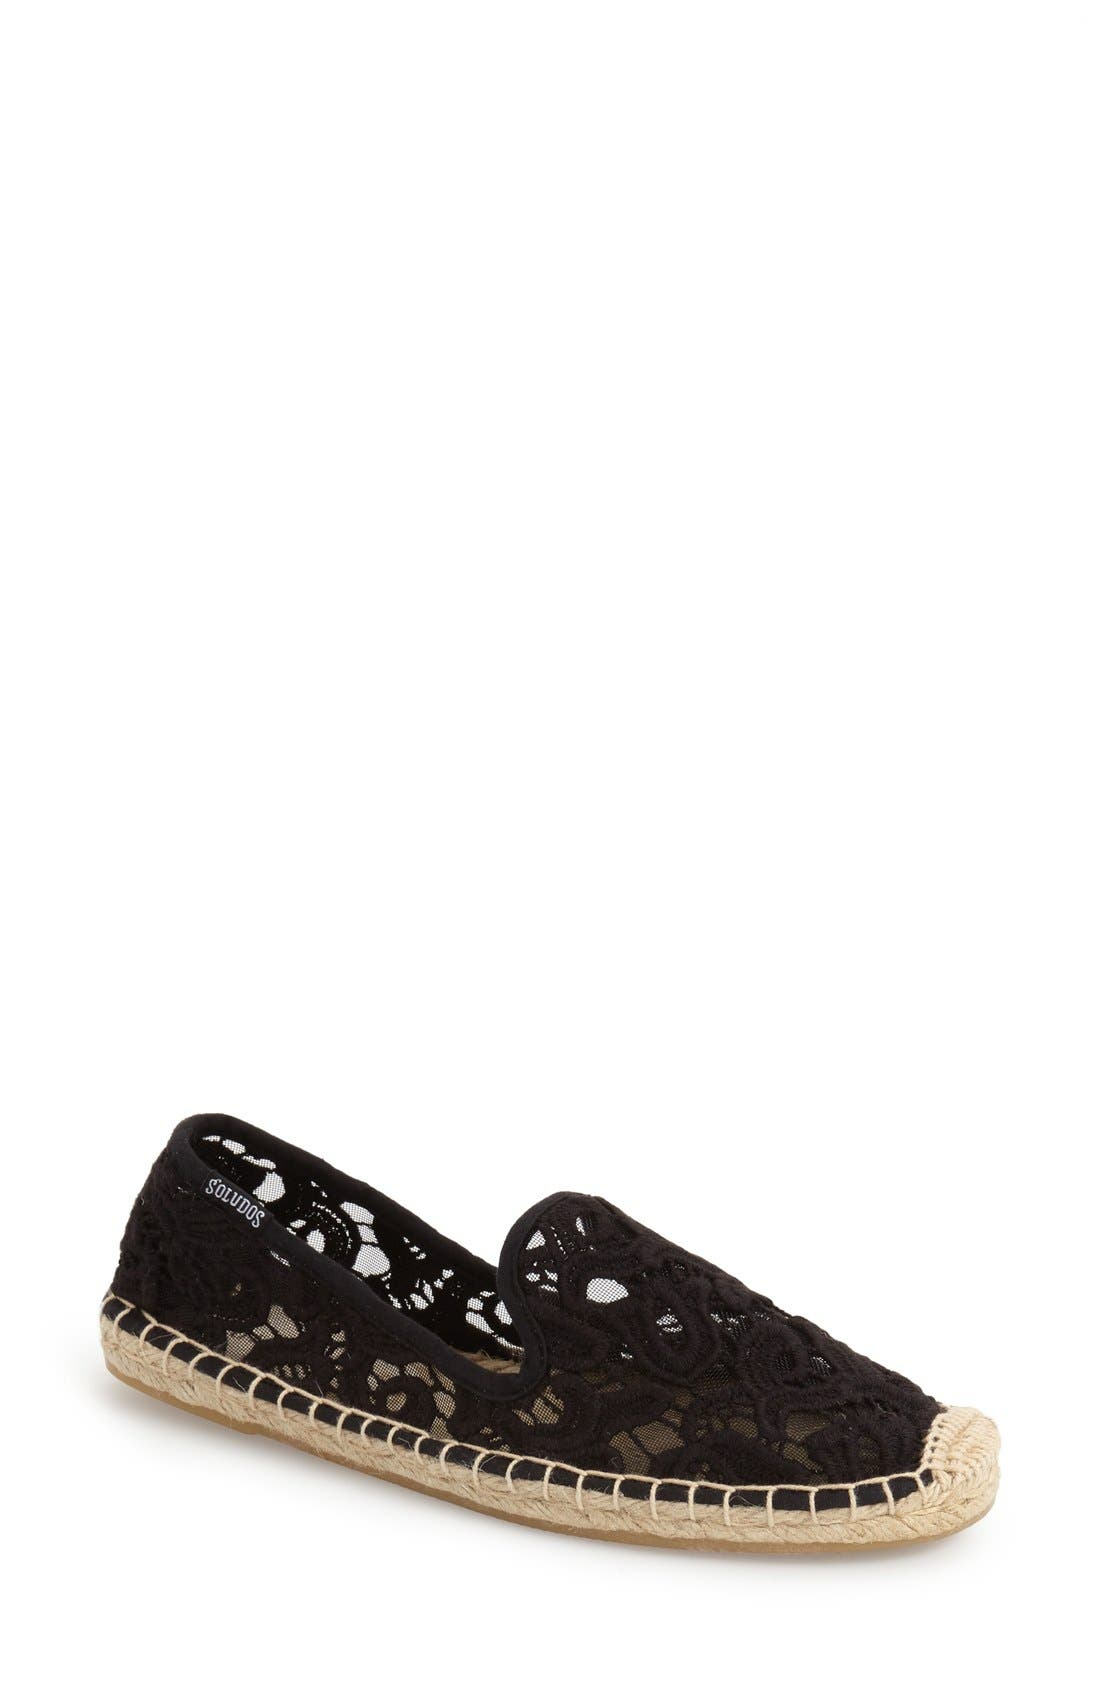 SOLUDOS Lace Espadrille Slip-On